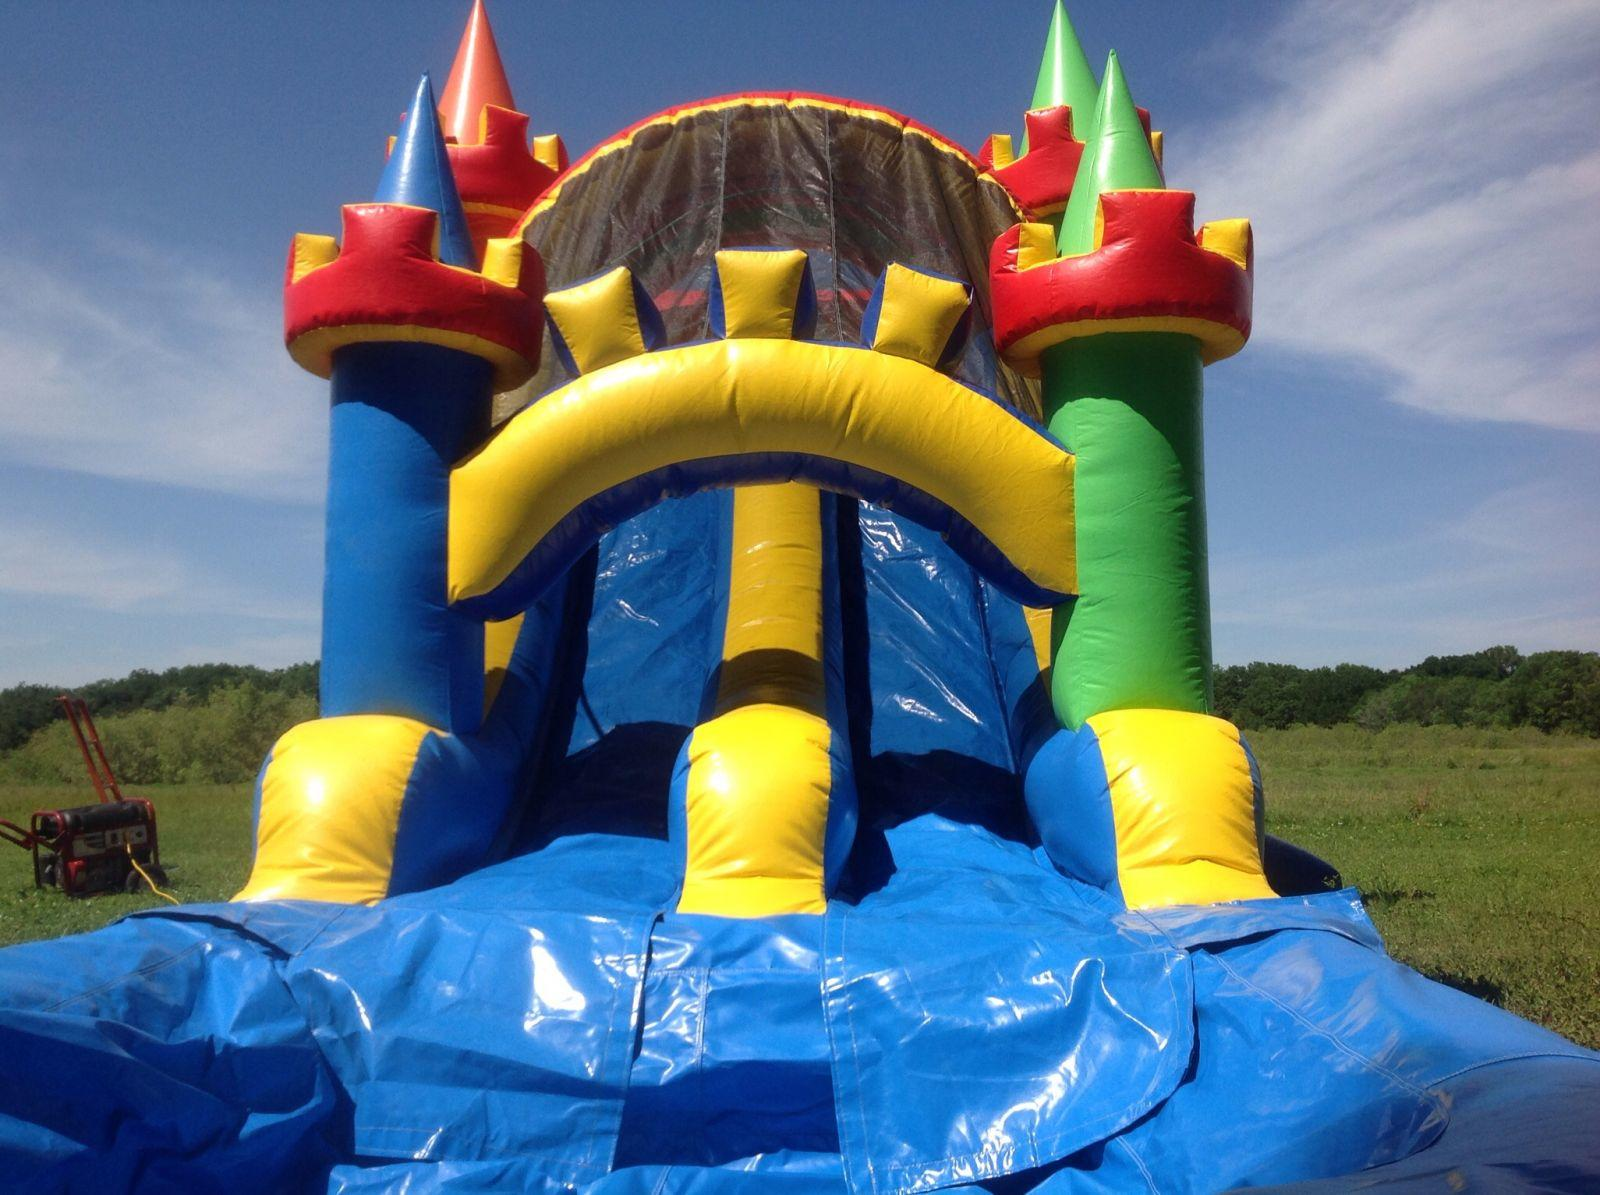 Obstacle course bounce house rental Tampa